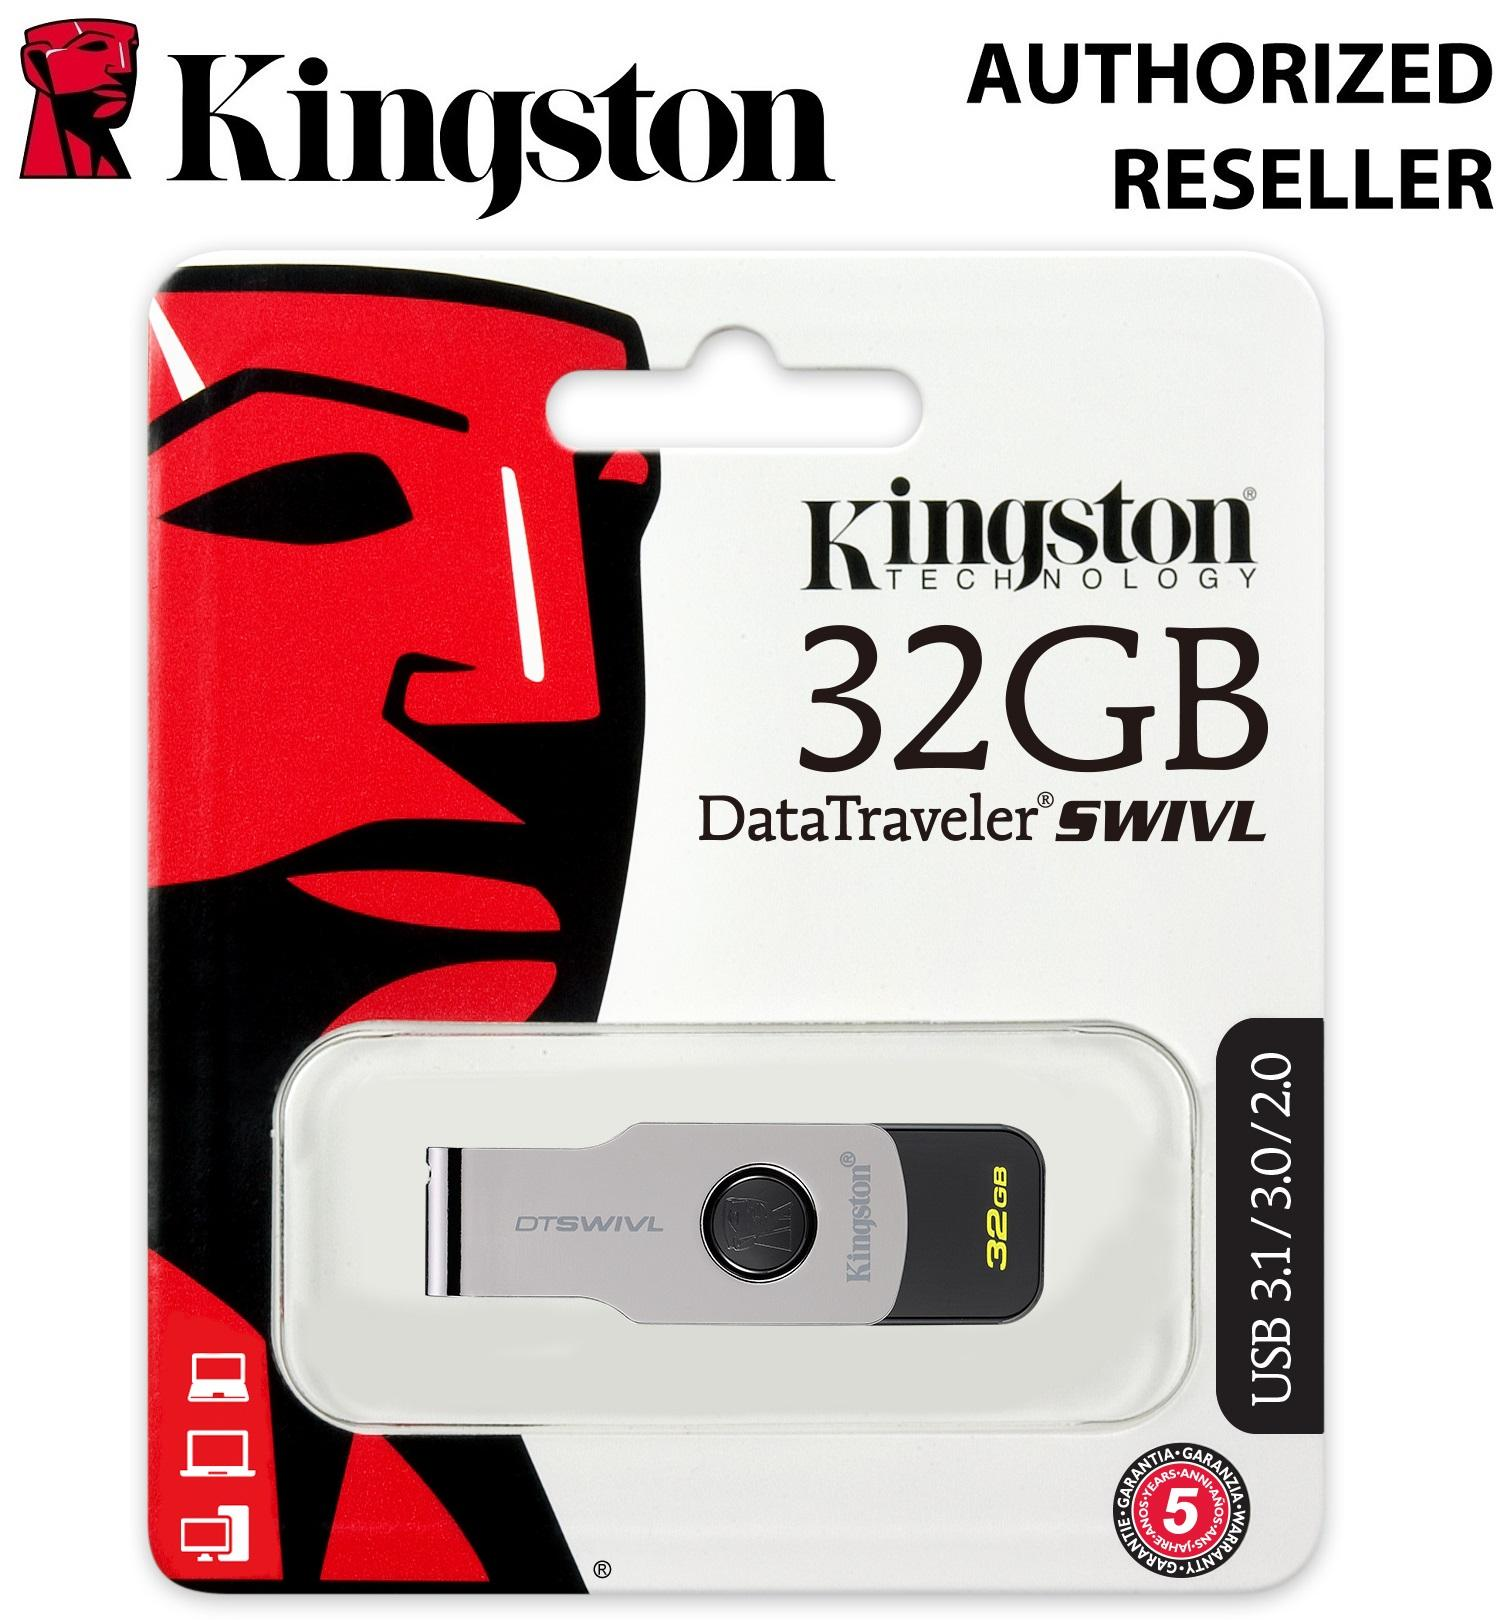 KINGSTON DTI 512 DRIVER FOR MAC DOWNLOAD